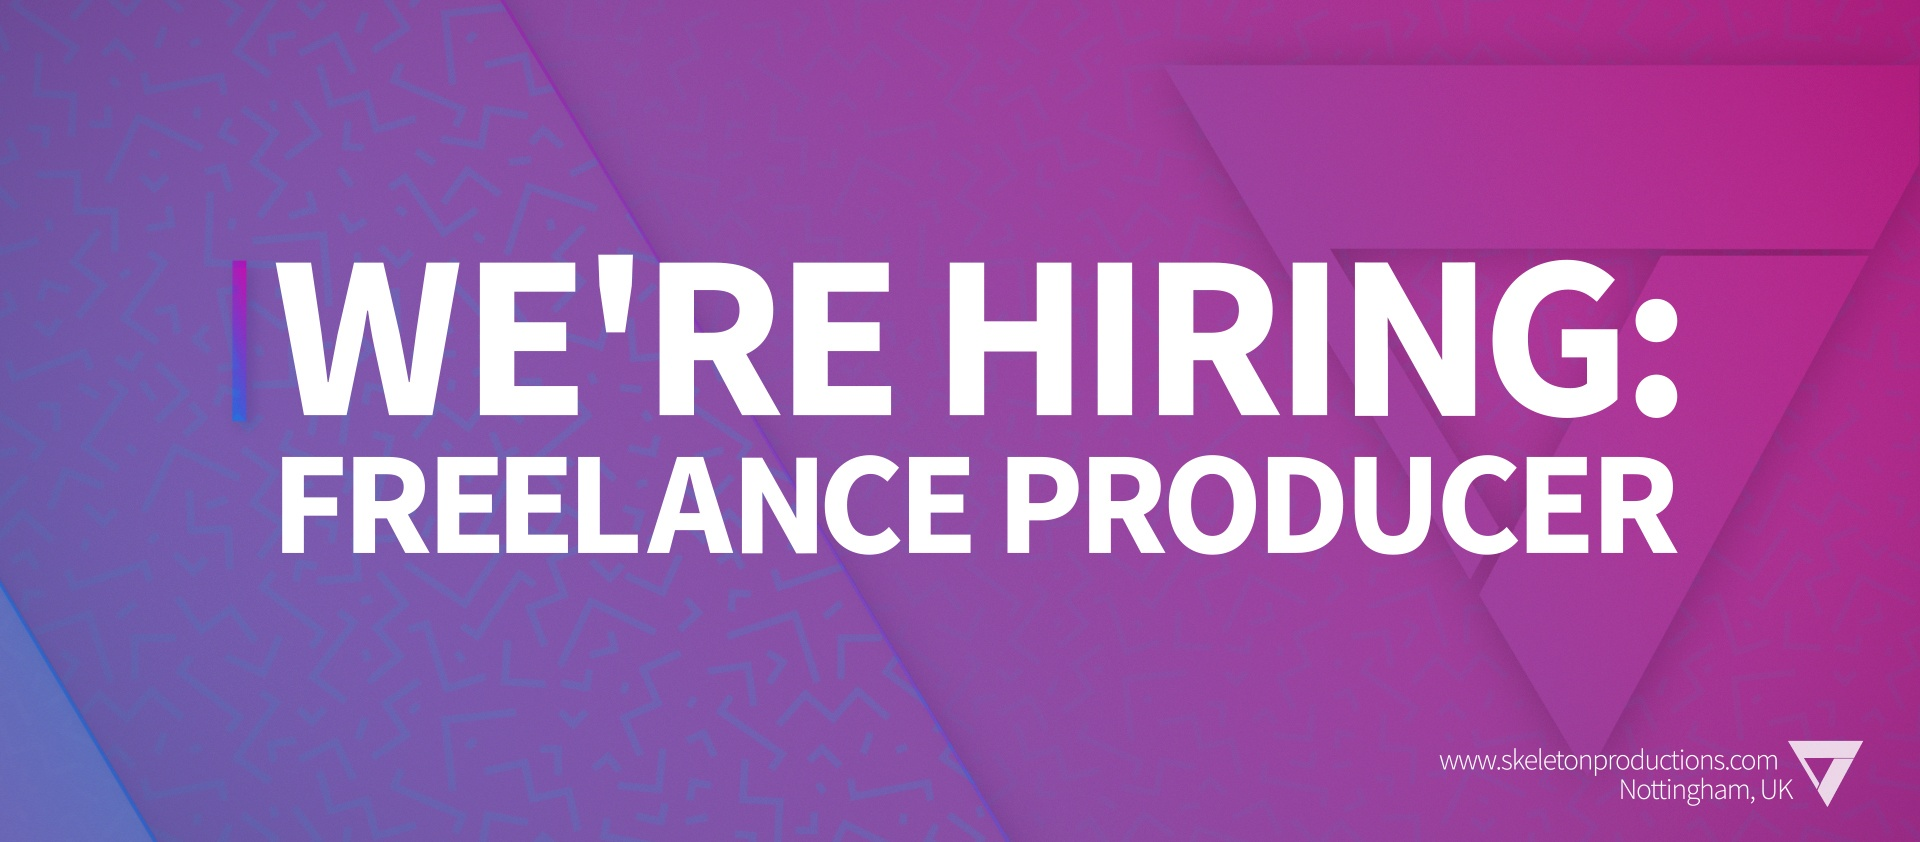 We're Hiring: Freelance Producer featured image